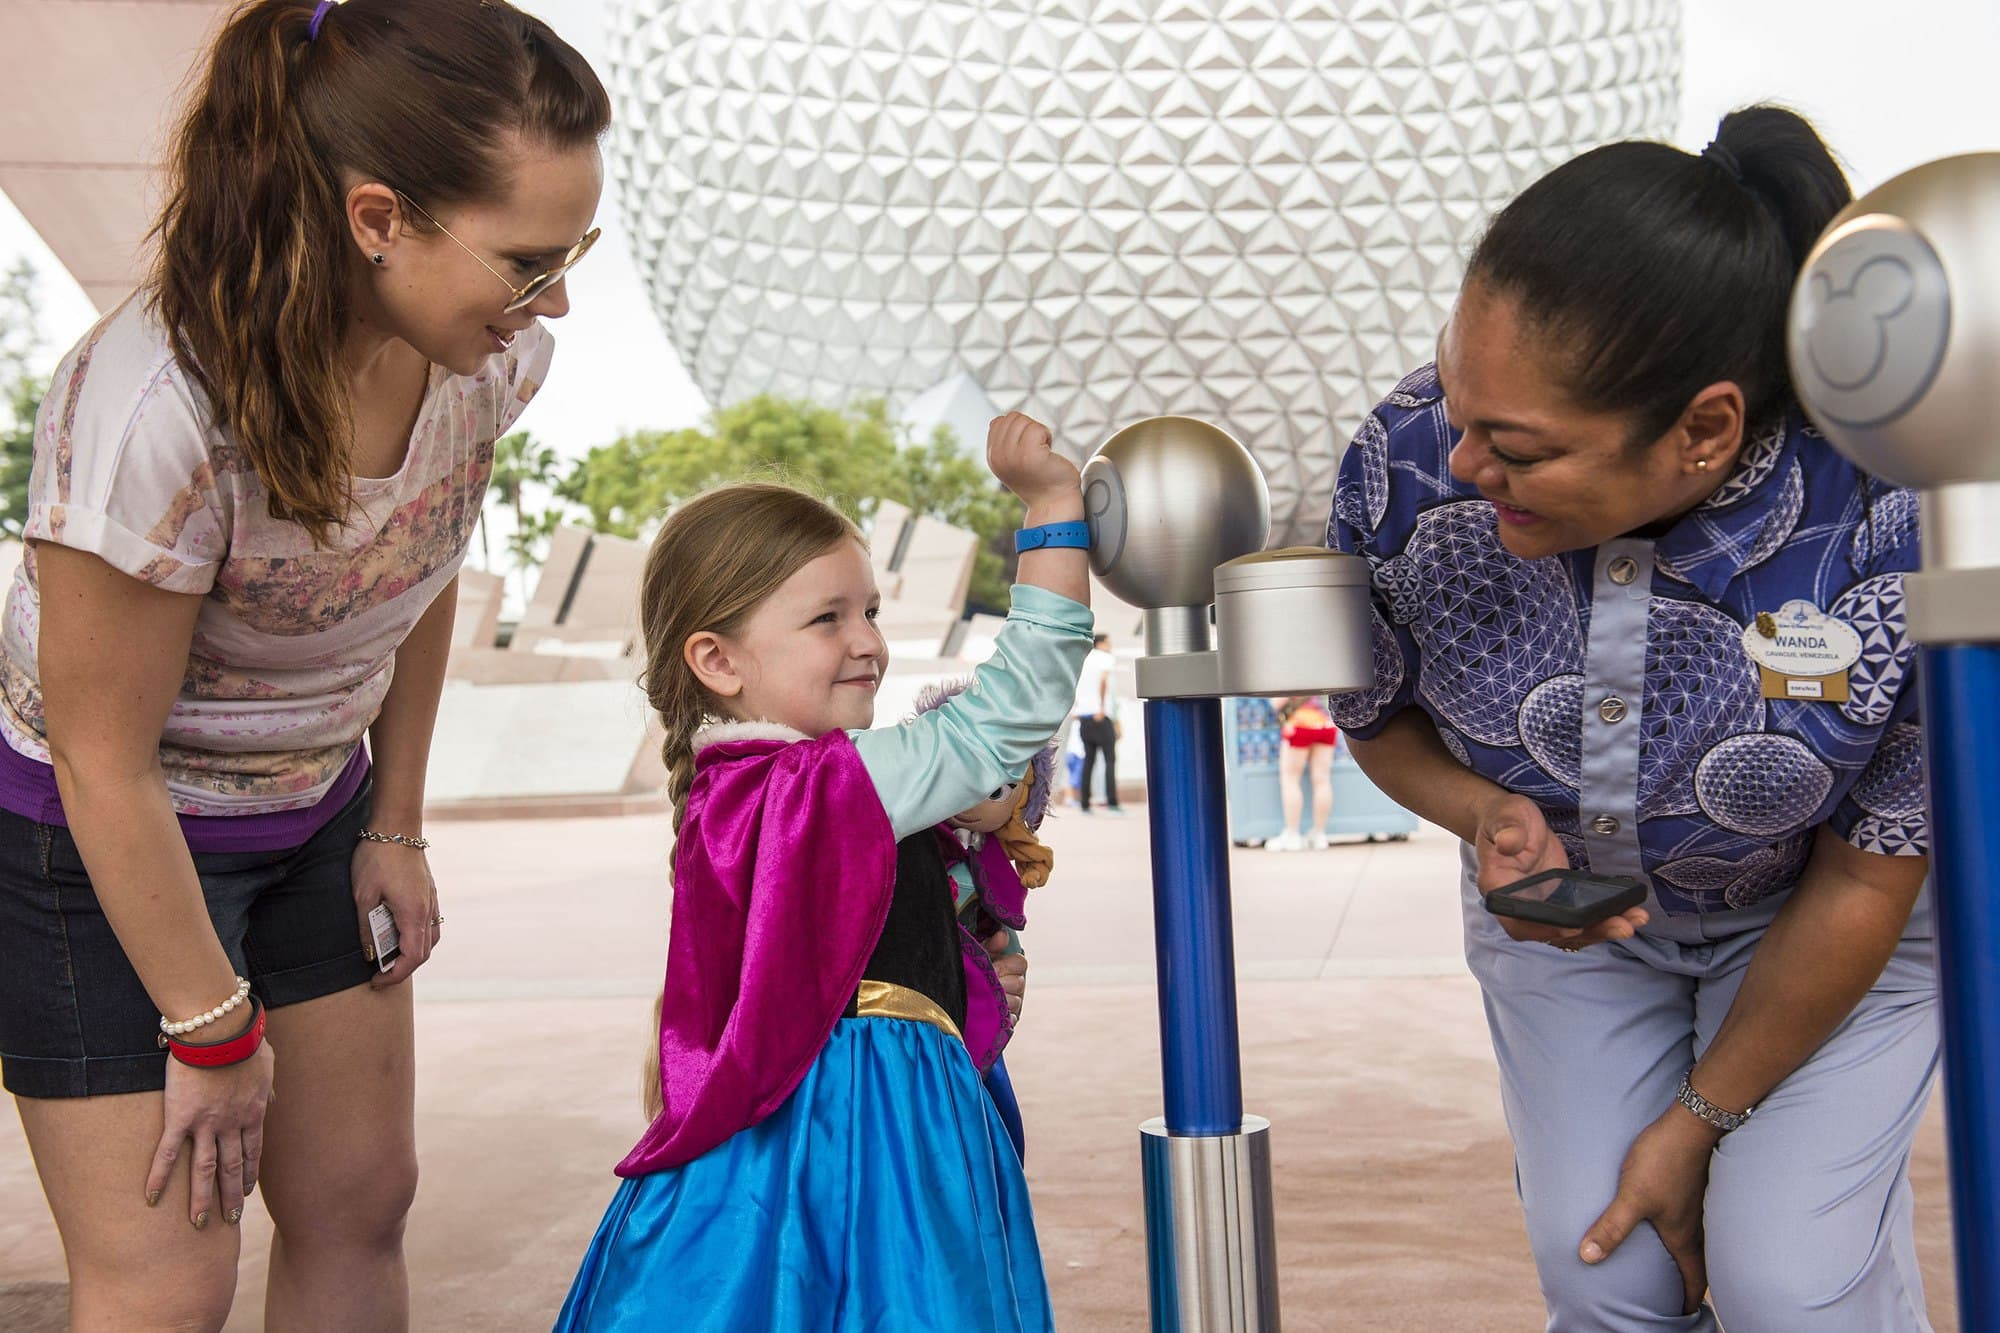 MagicBands are used for park entry and FastPass+ and more at EPCOT with kids